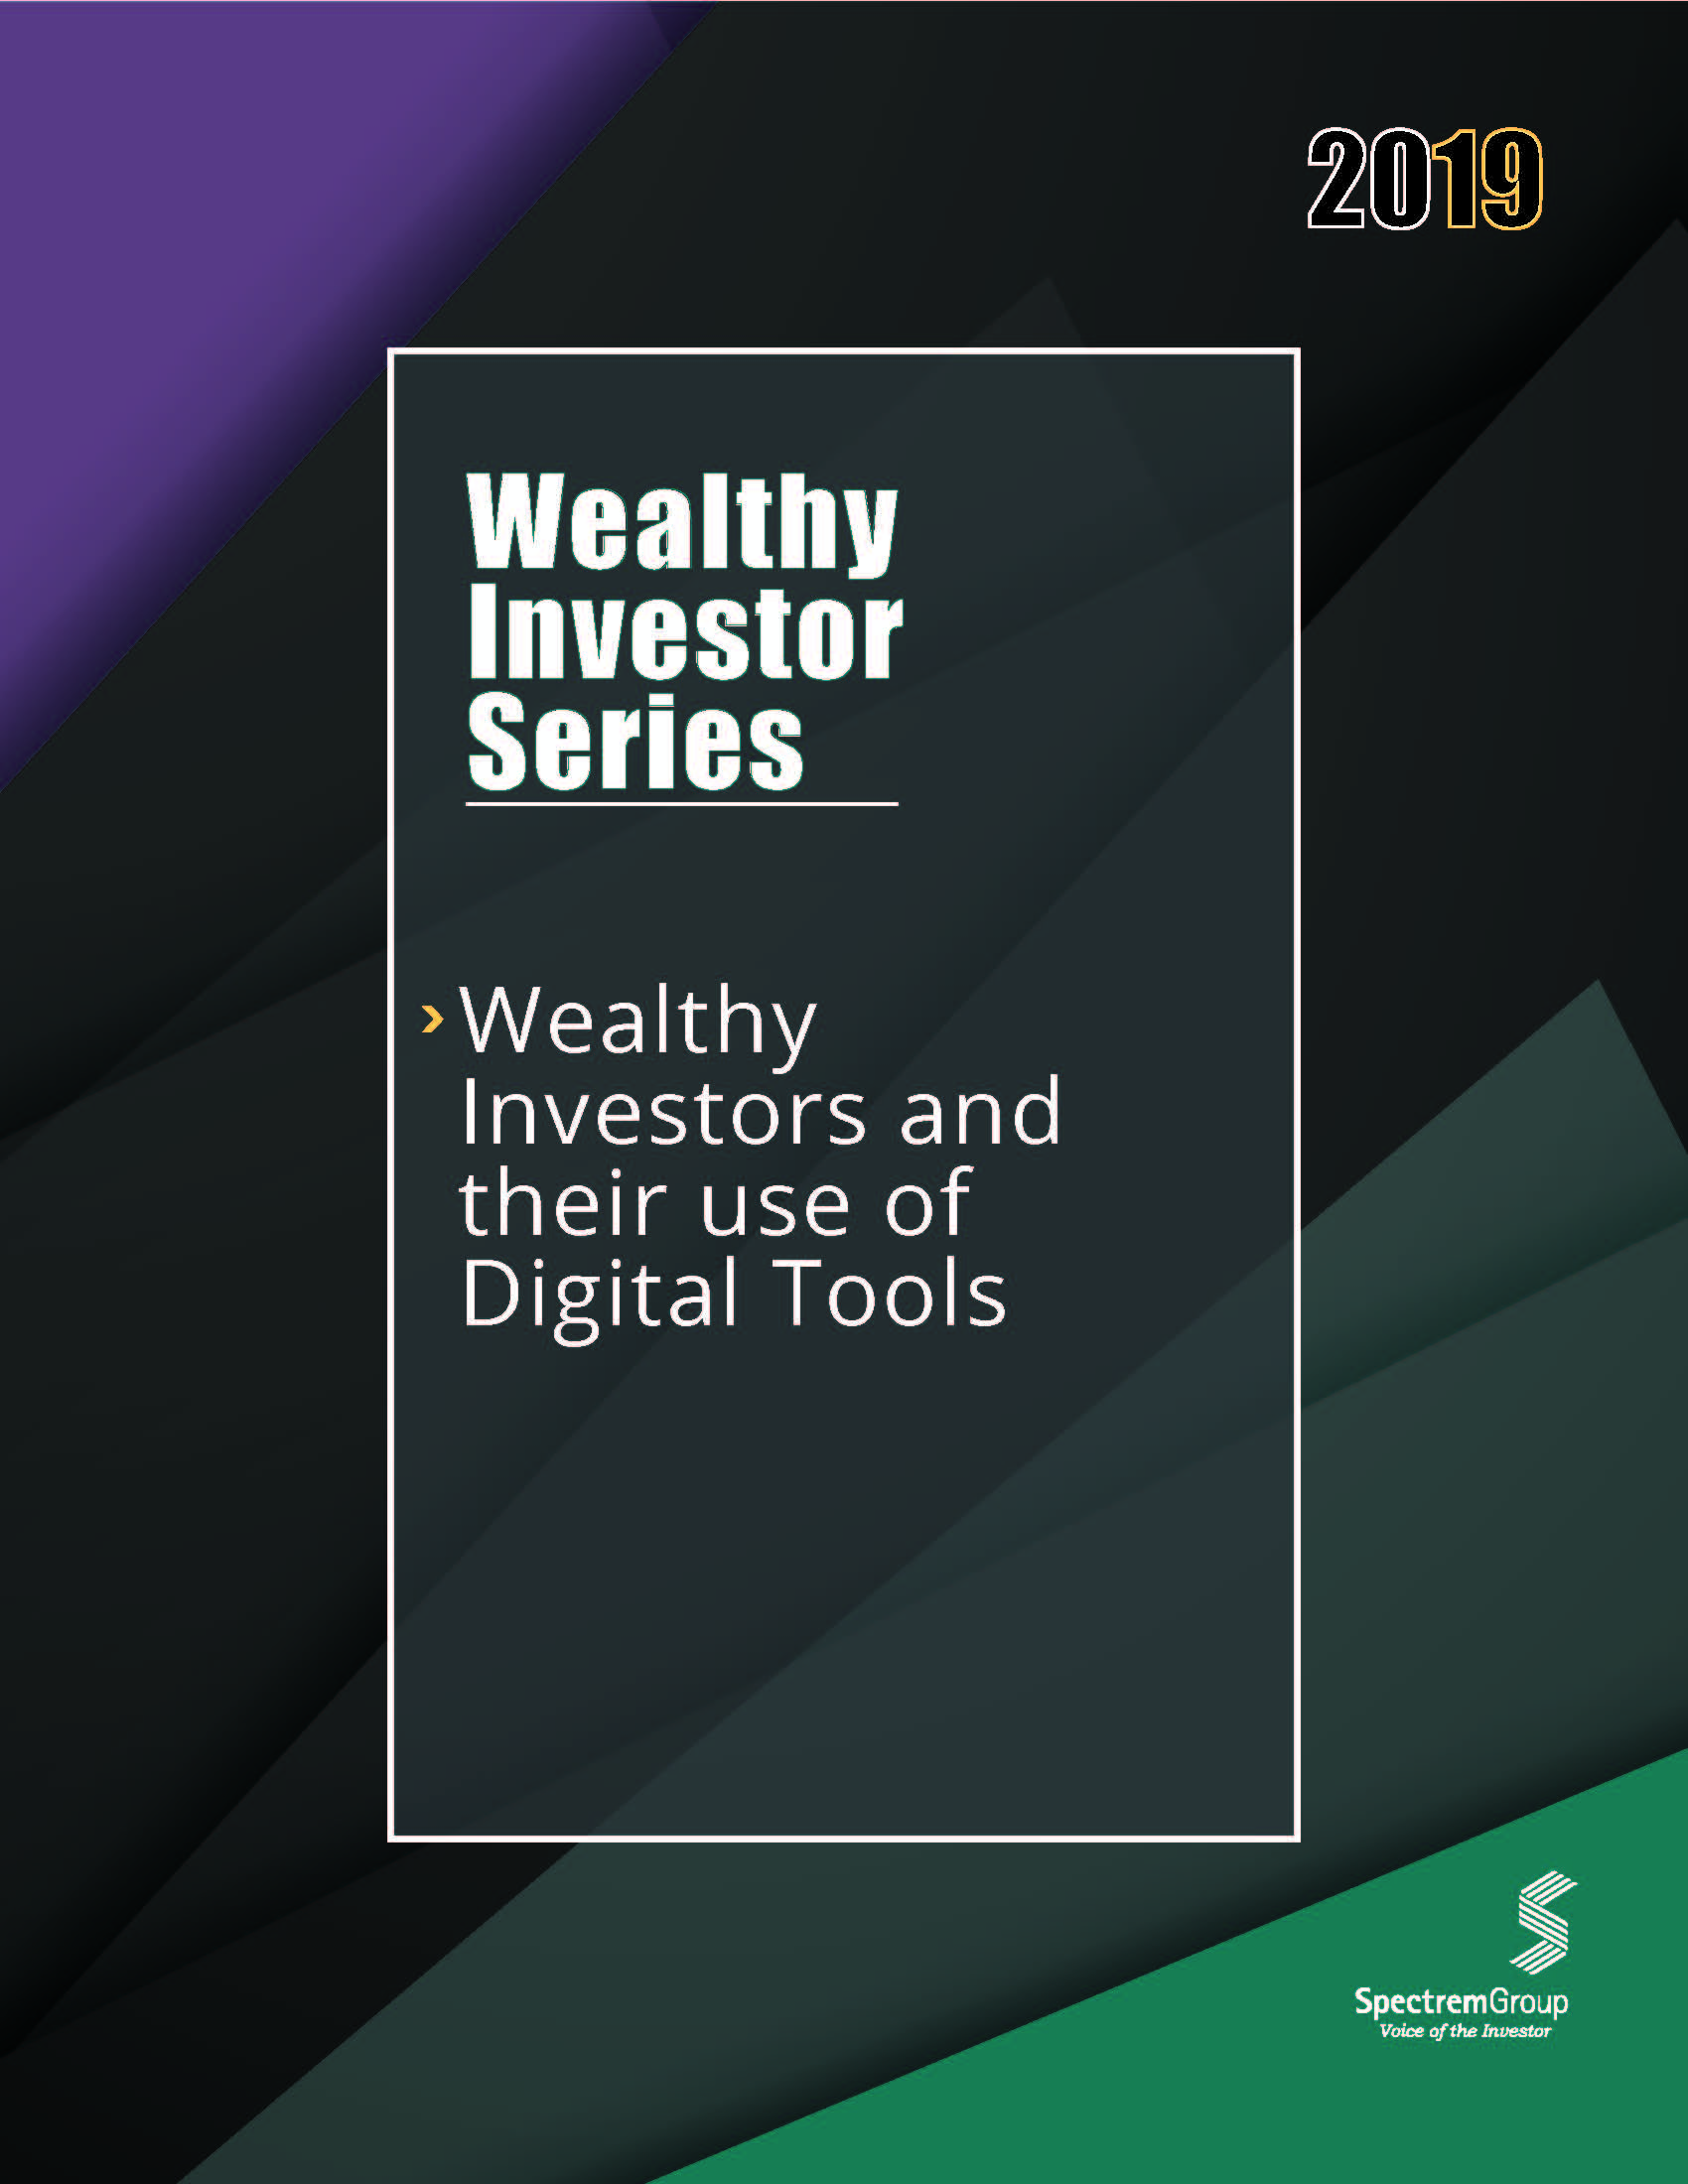 Wealthy Investor Series: Wealthy Investors and the Use of Digital Tools